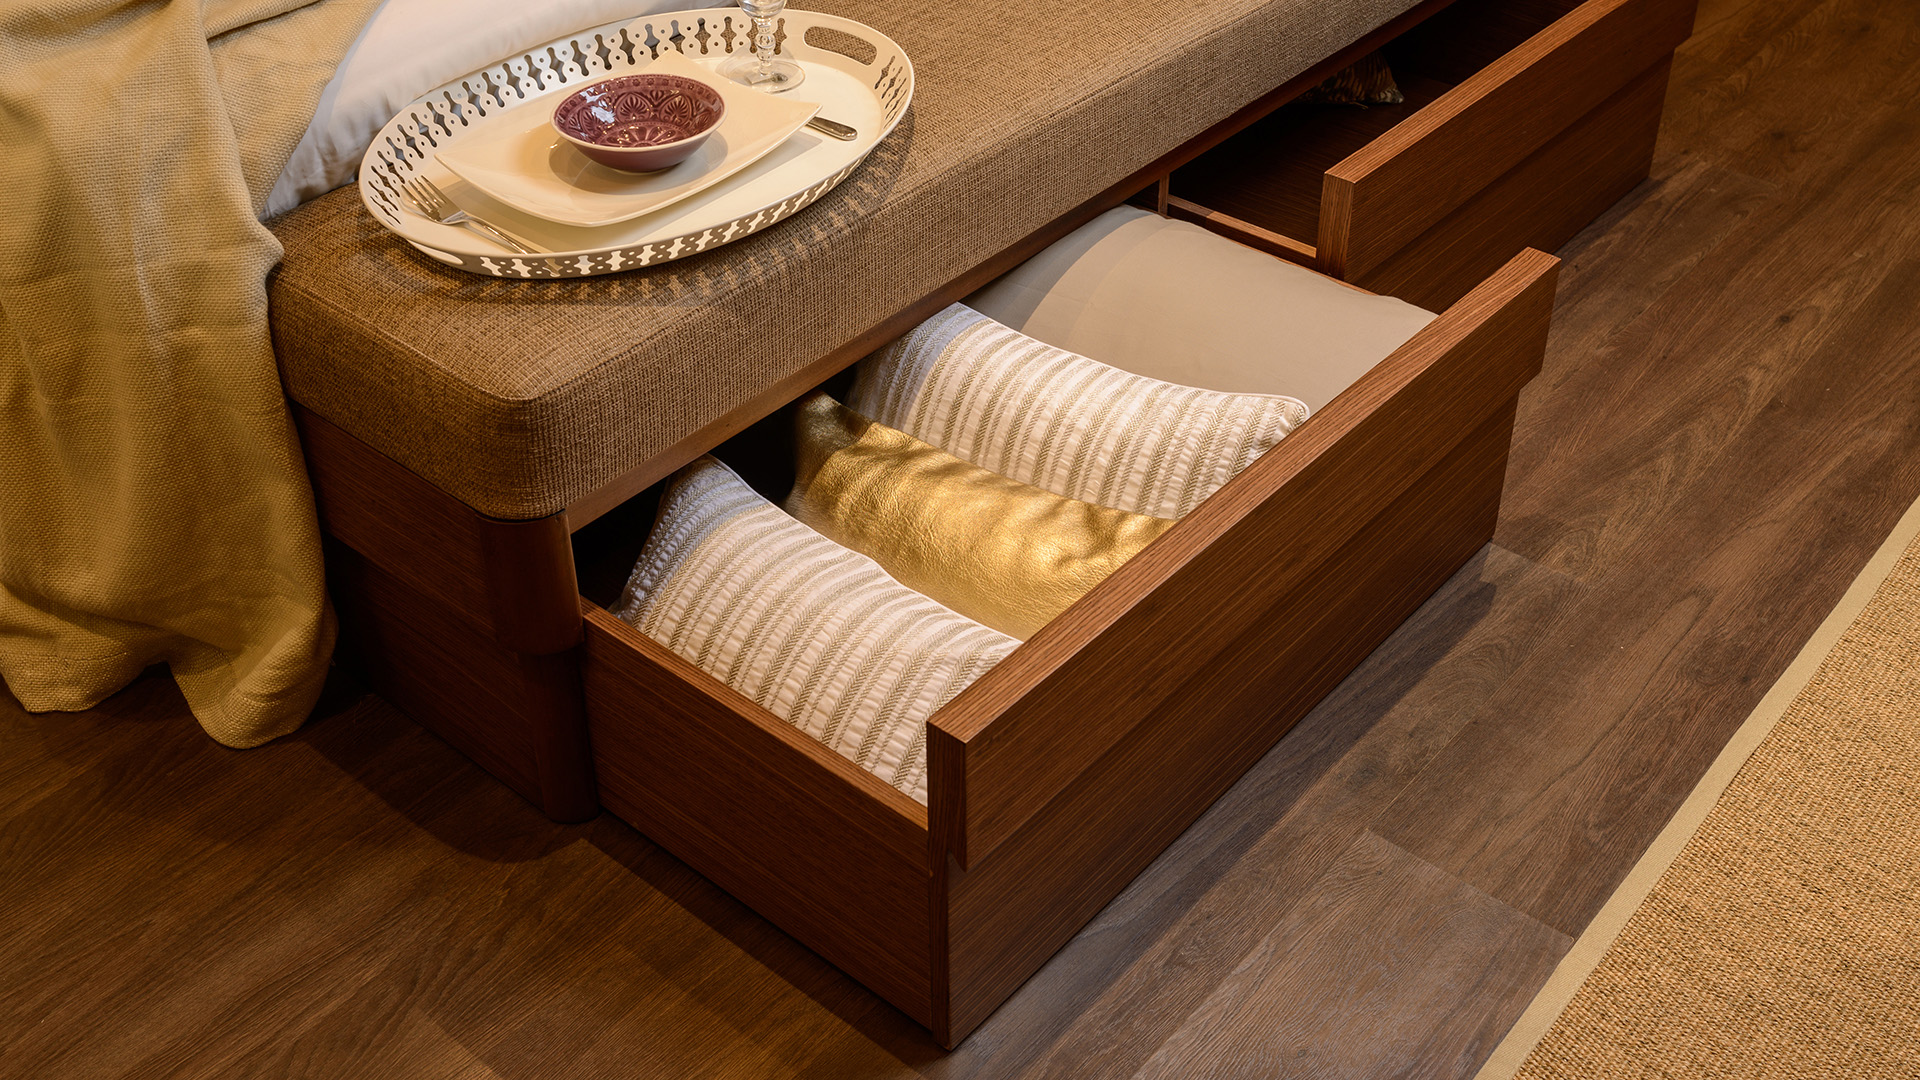 Andalusia master Bed 160 with drawers